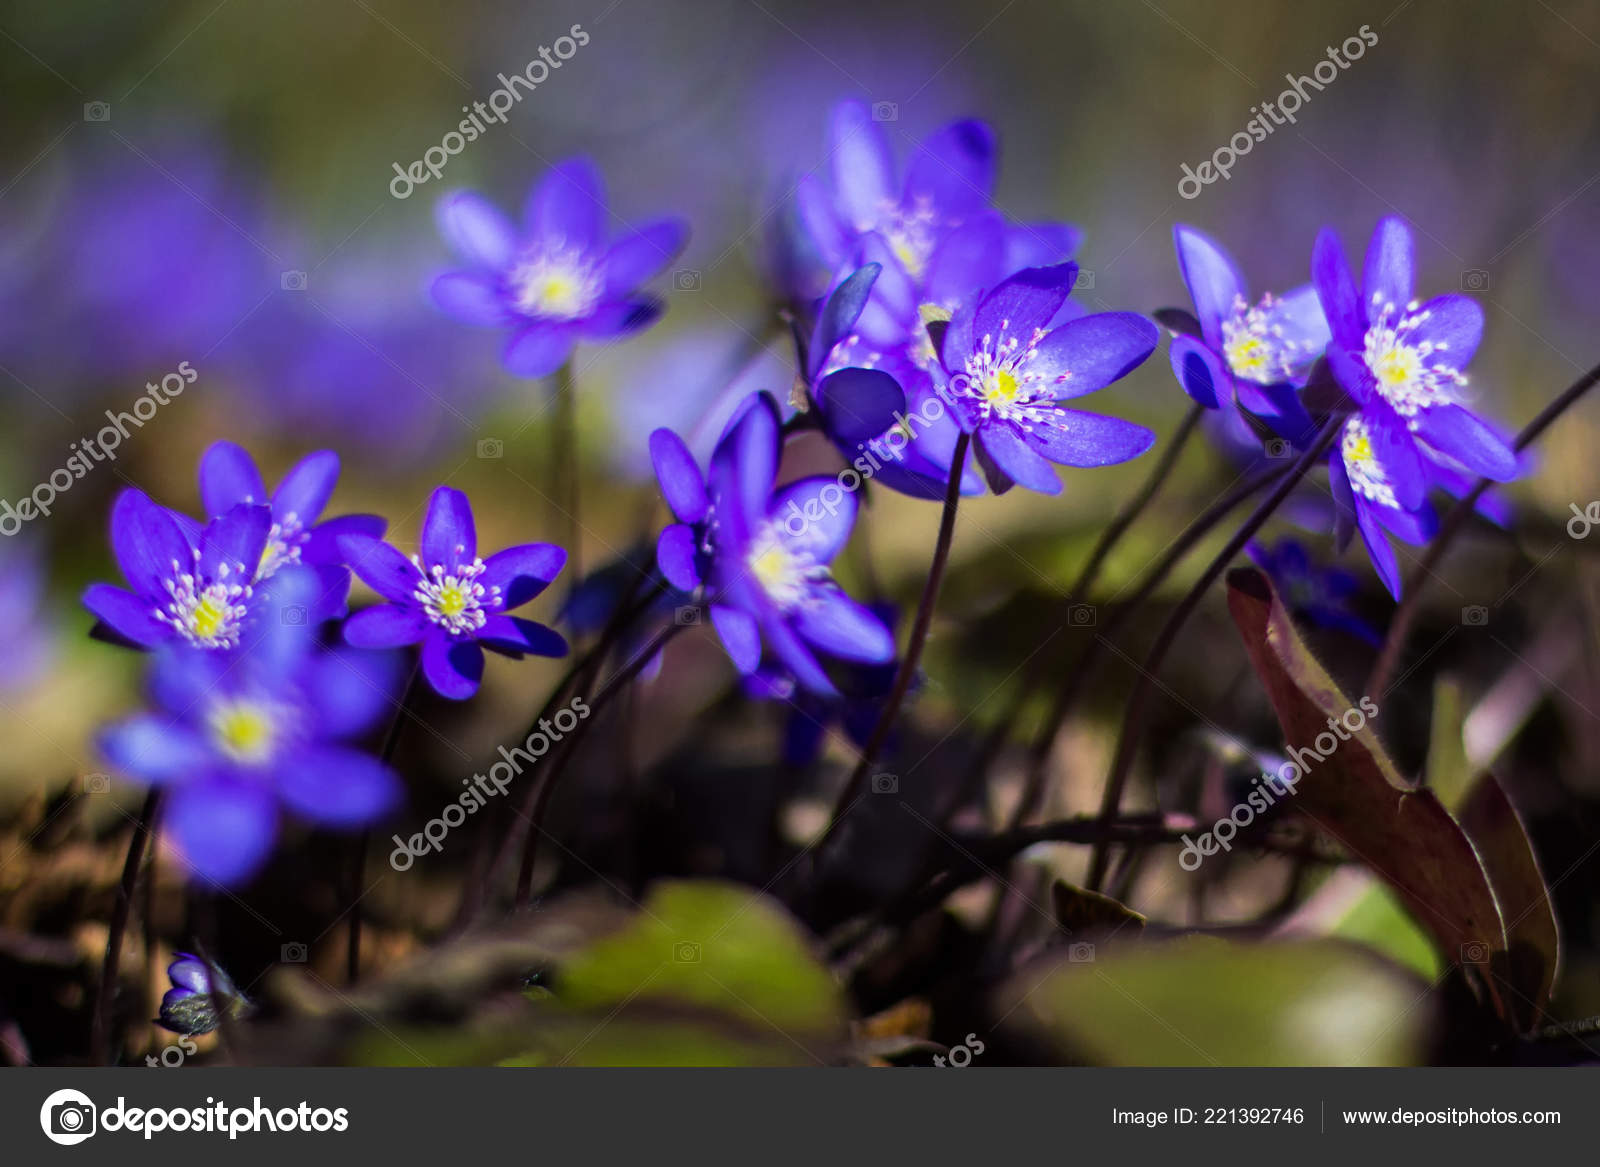 Hepatica Early Spring Purple Flowers Growing Forest Stock Photo